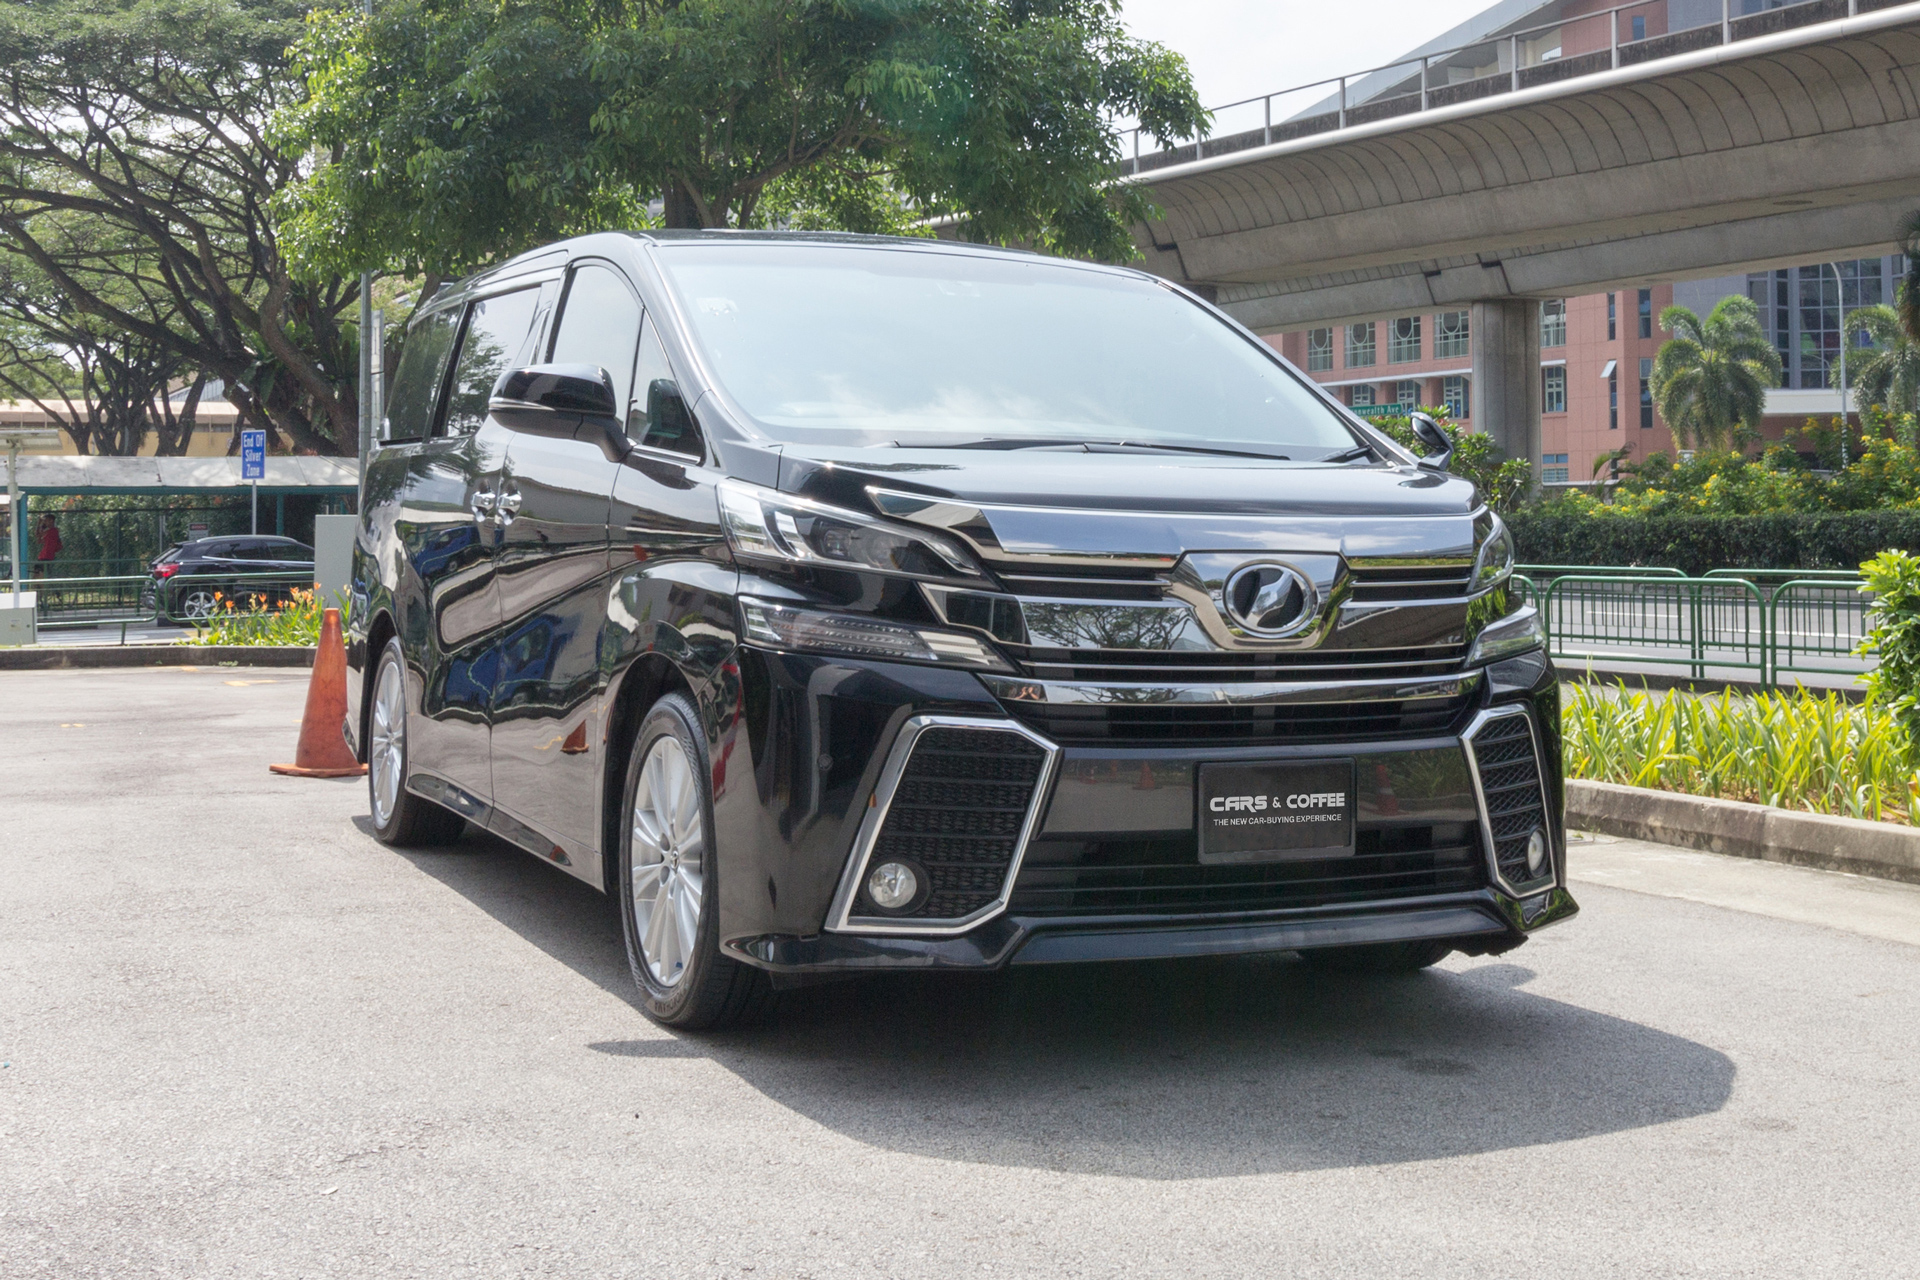 Certified Pre-Owned Toyota Vellfire 2.5A Z | Cars and Coffee Singapore